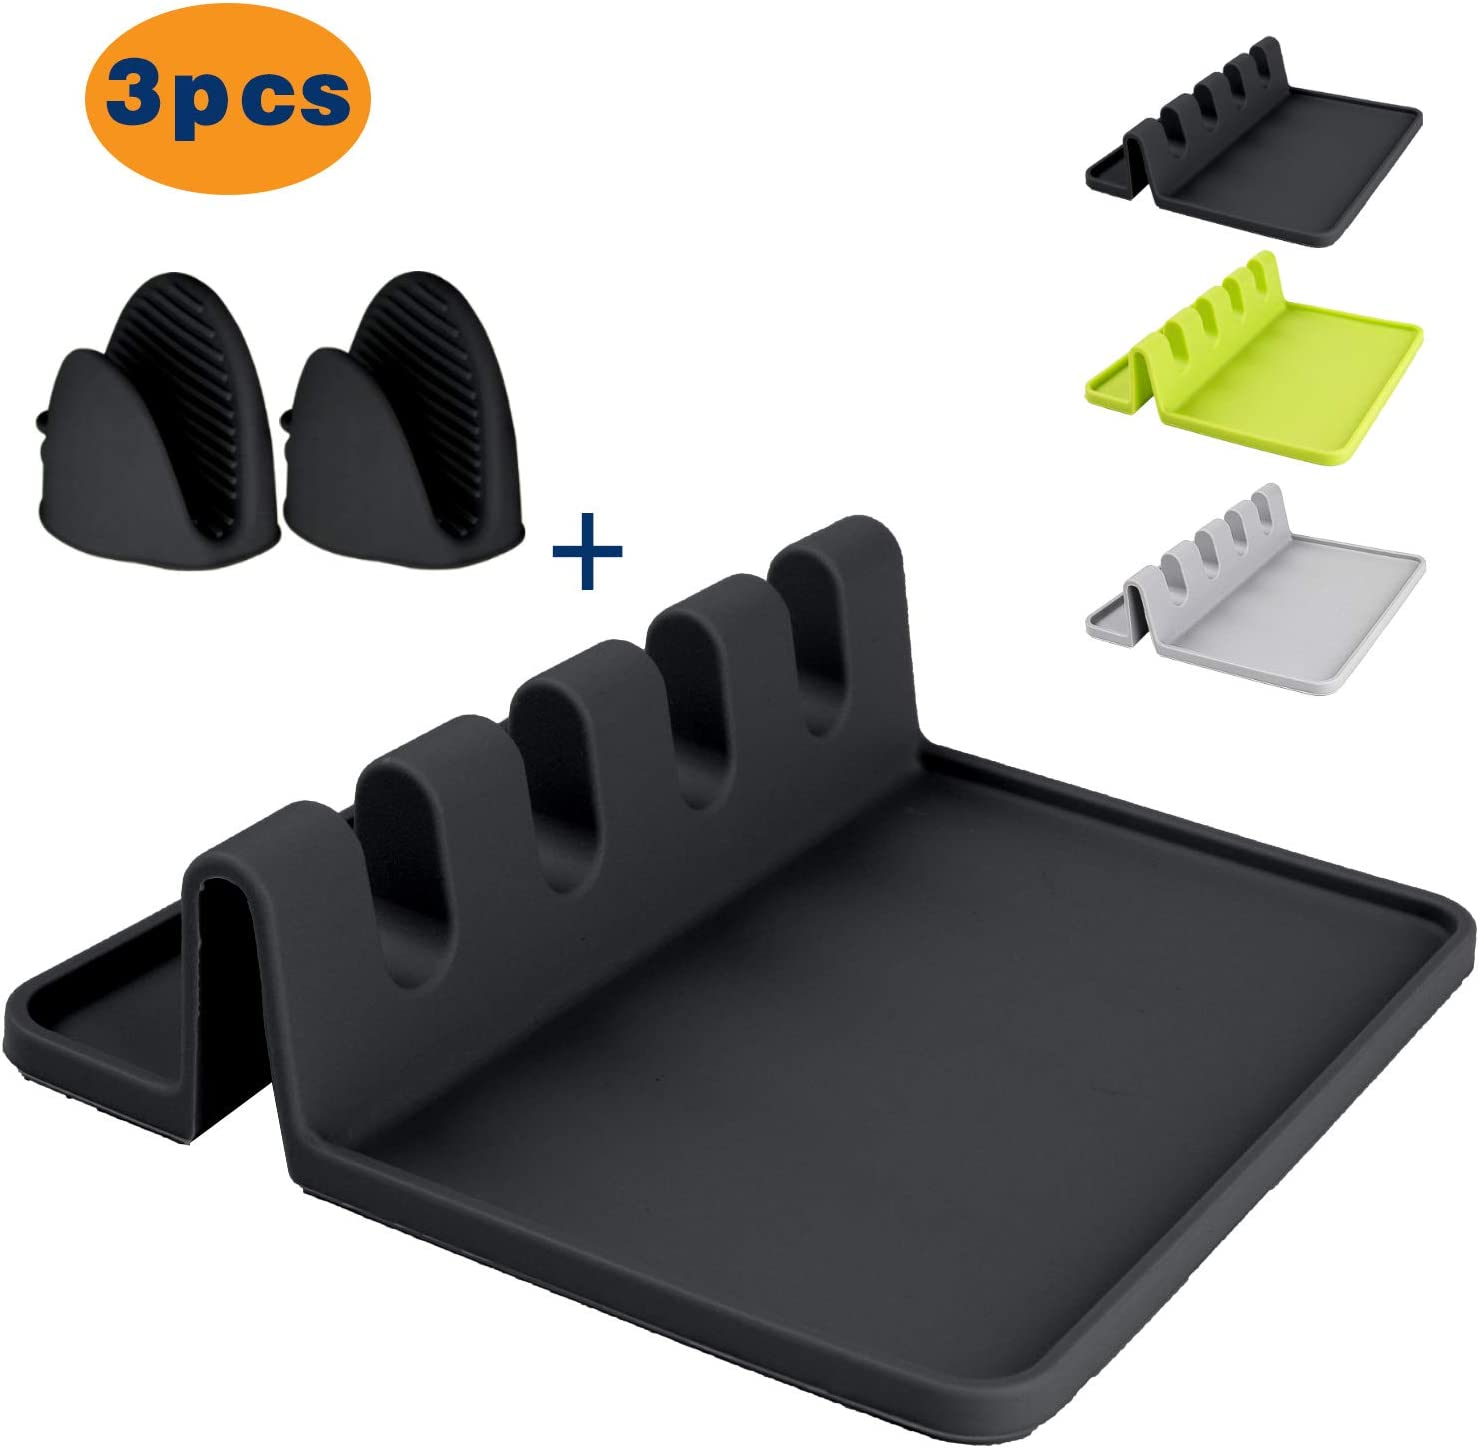 Spoon rest and Oven Mitts set, Kitchen Utensil Rest Heat-Resistant mitts, BPA-Free Spoon Rest & Spoon Holder for Stove Top, Kitchen Utensil Holder for Spoons, Ladles, Tongs (Black color)